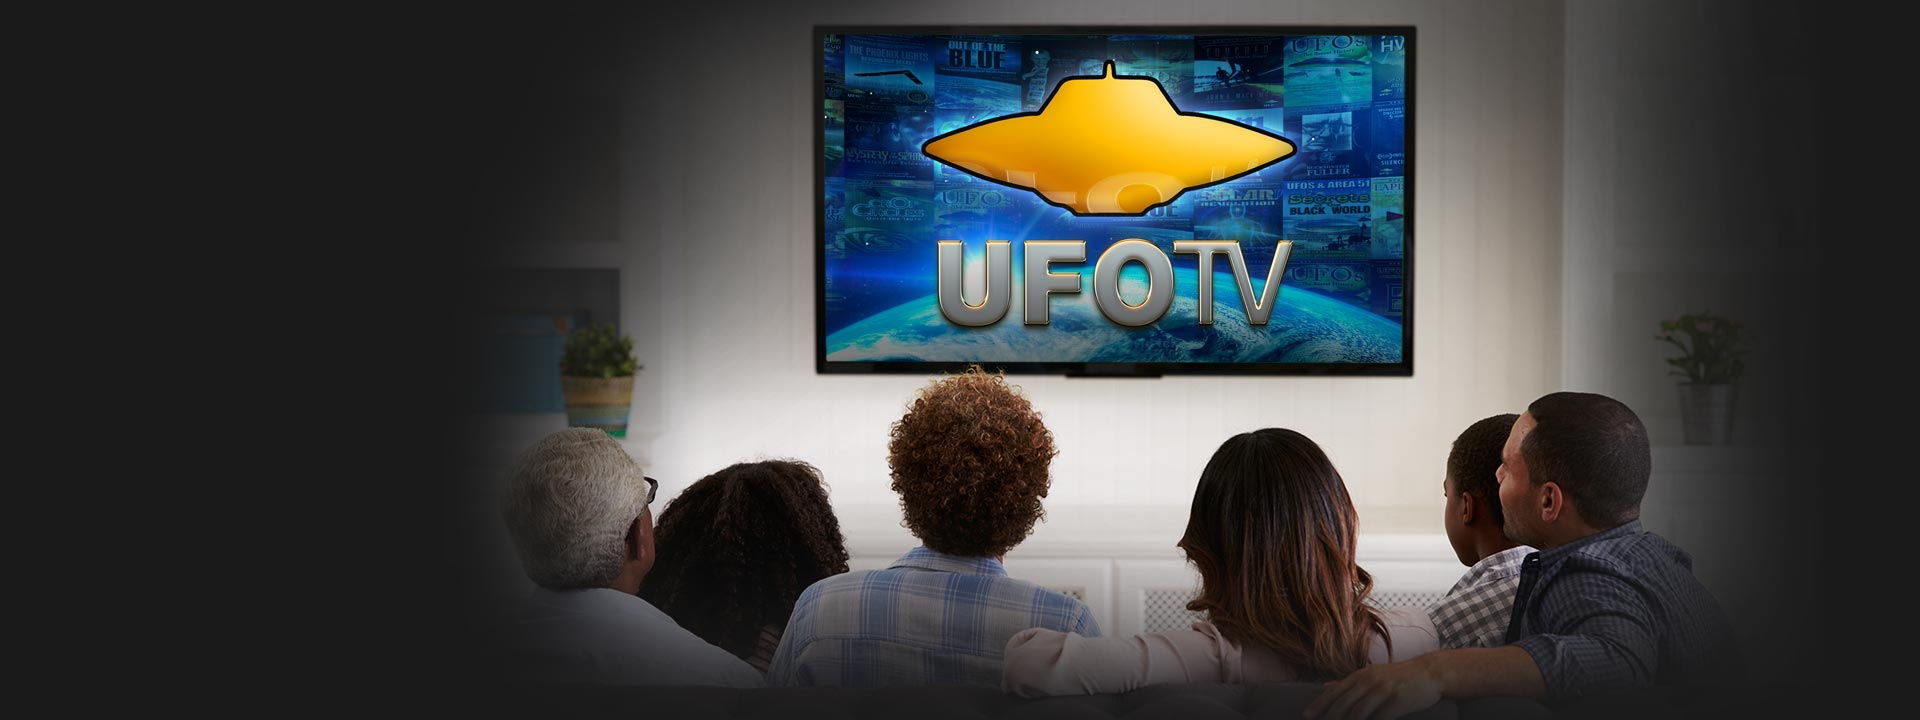 UFOTV - Watch Everywhere